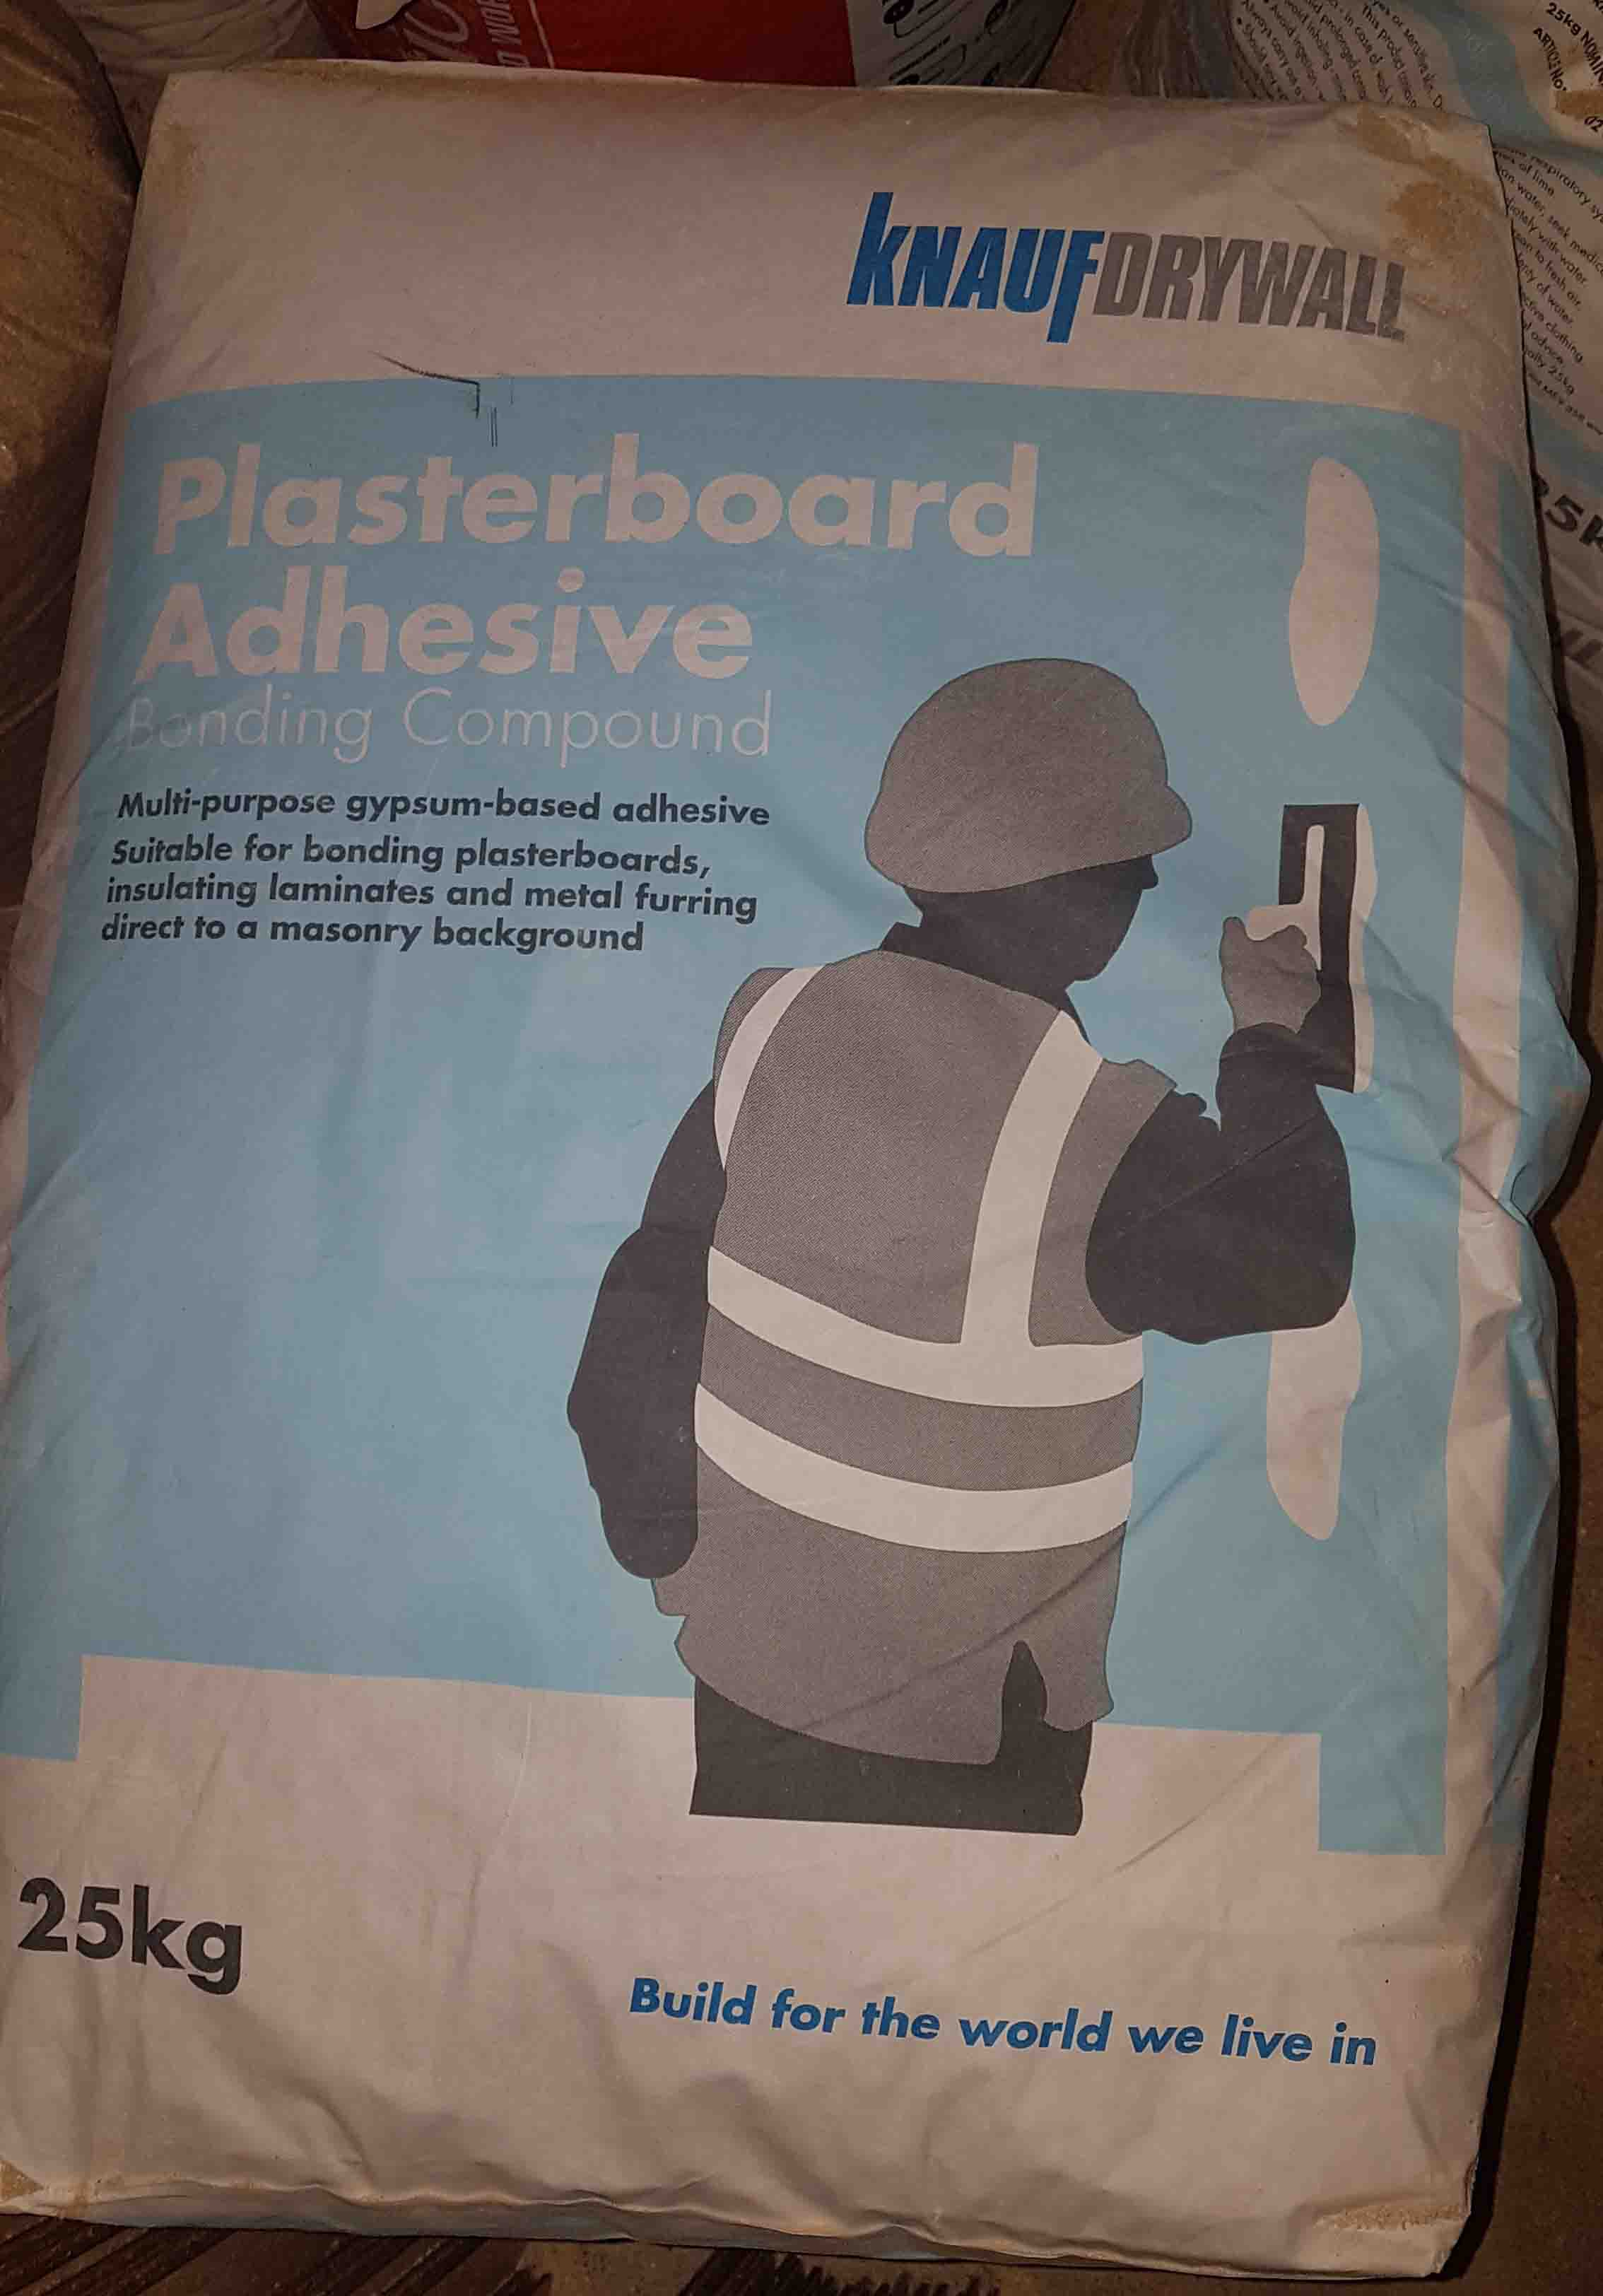 picture of a bag of knauf drywall plasterboard adhesive bonding compound